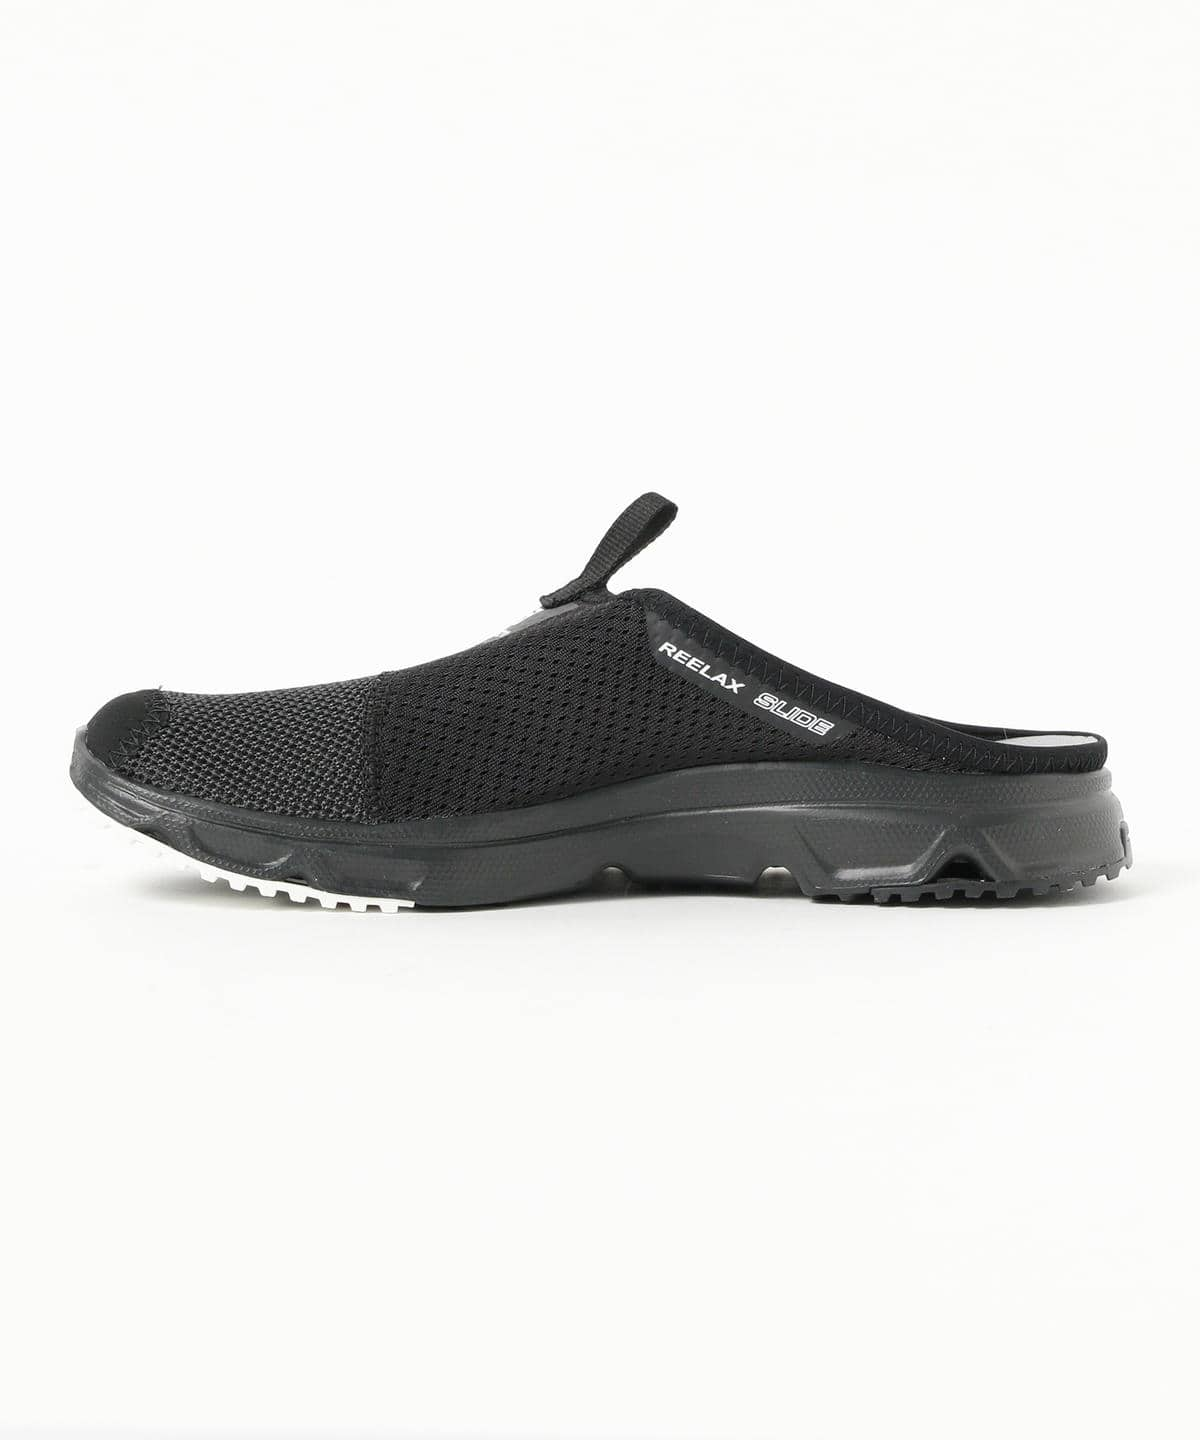 salomon rx slide damen ni�o